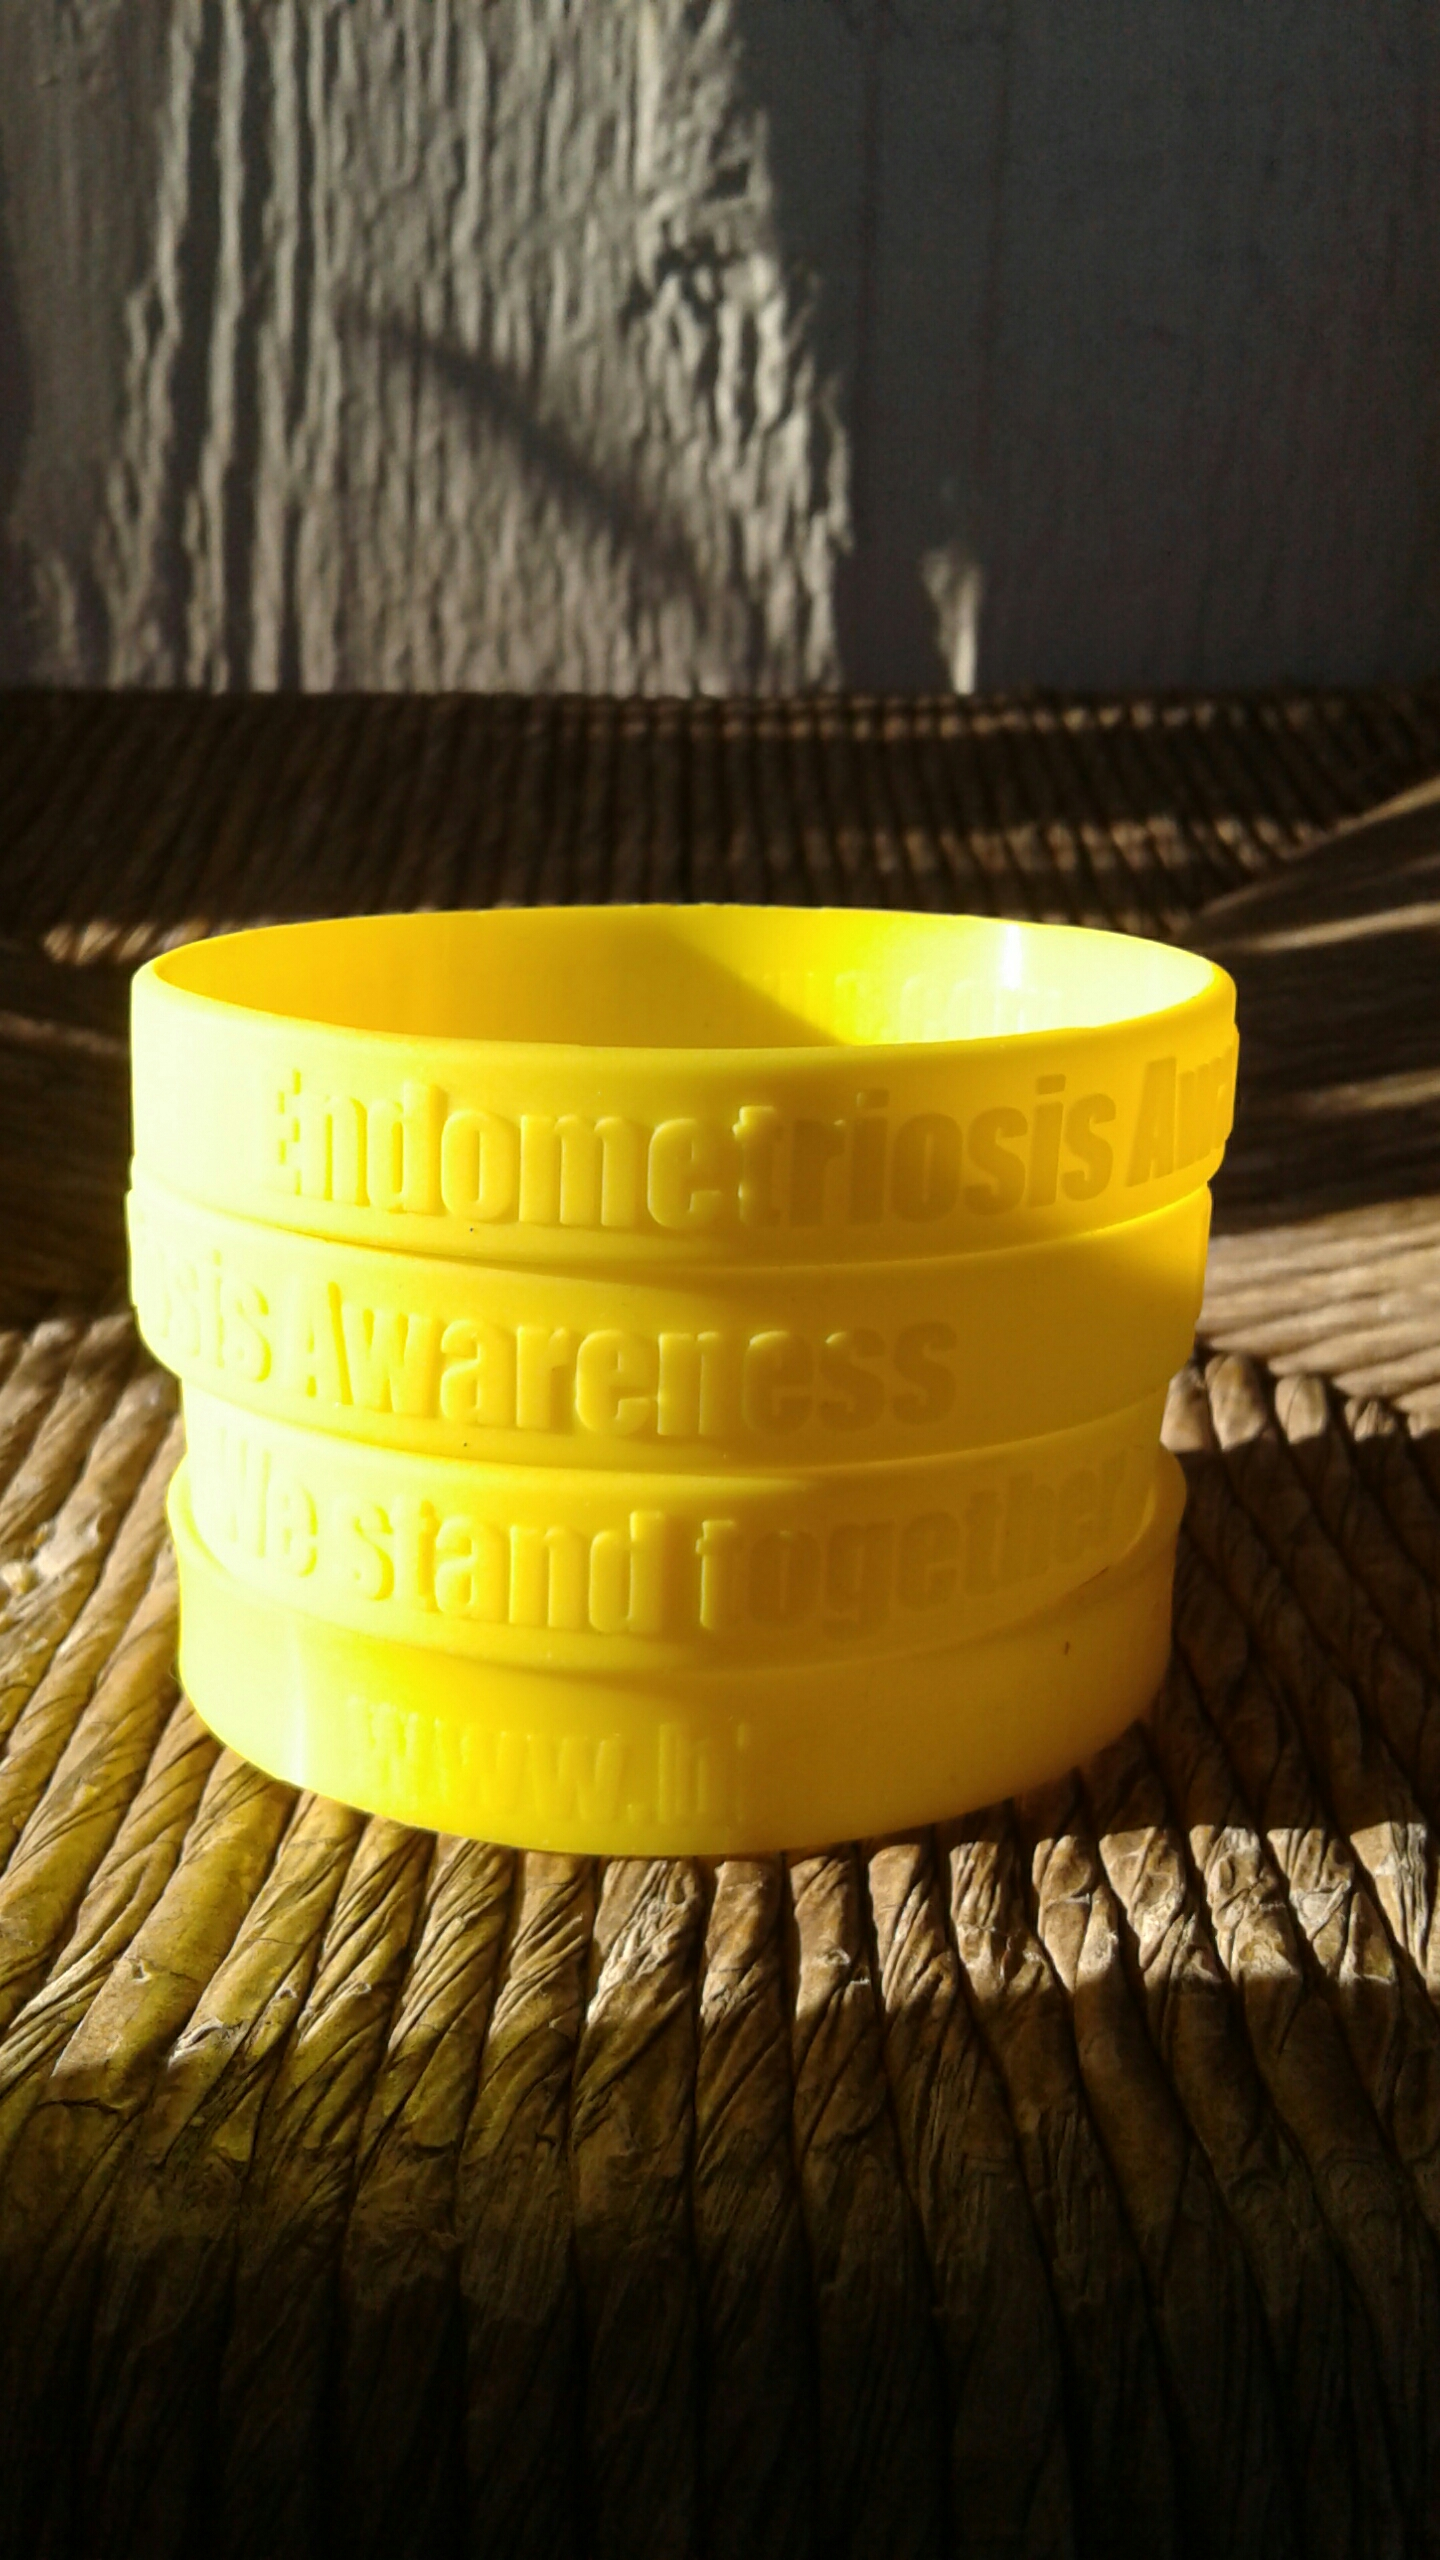 Yellow Endometriosis awareness bracelets